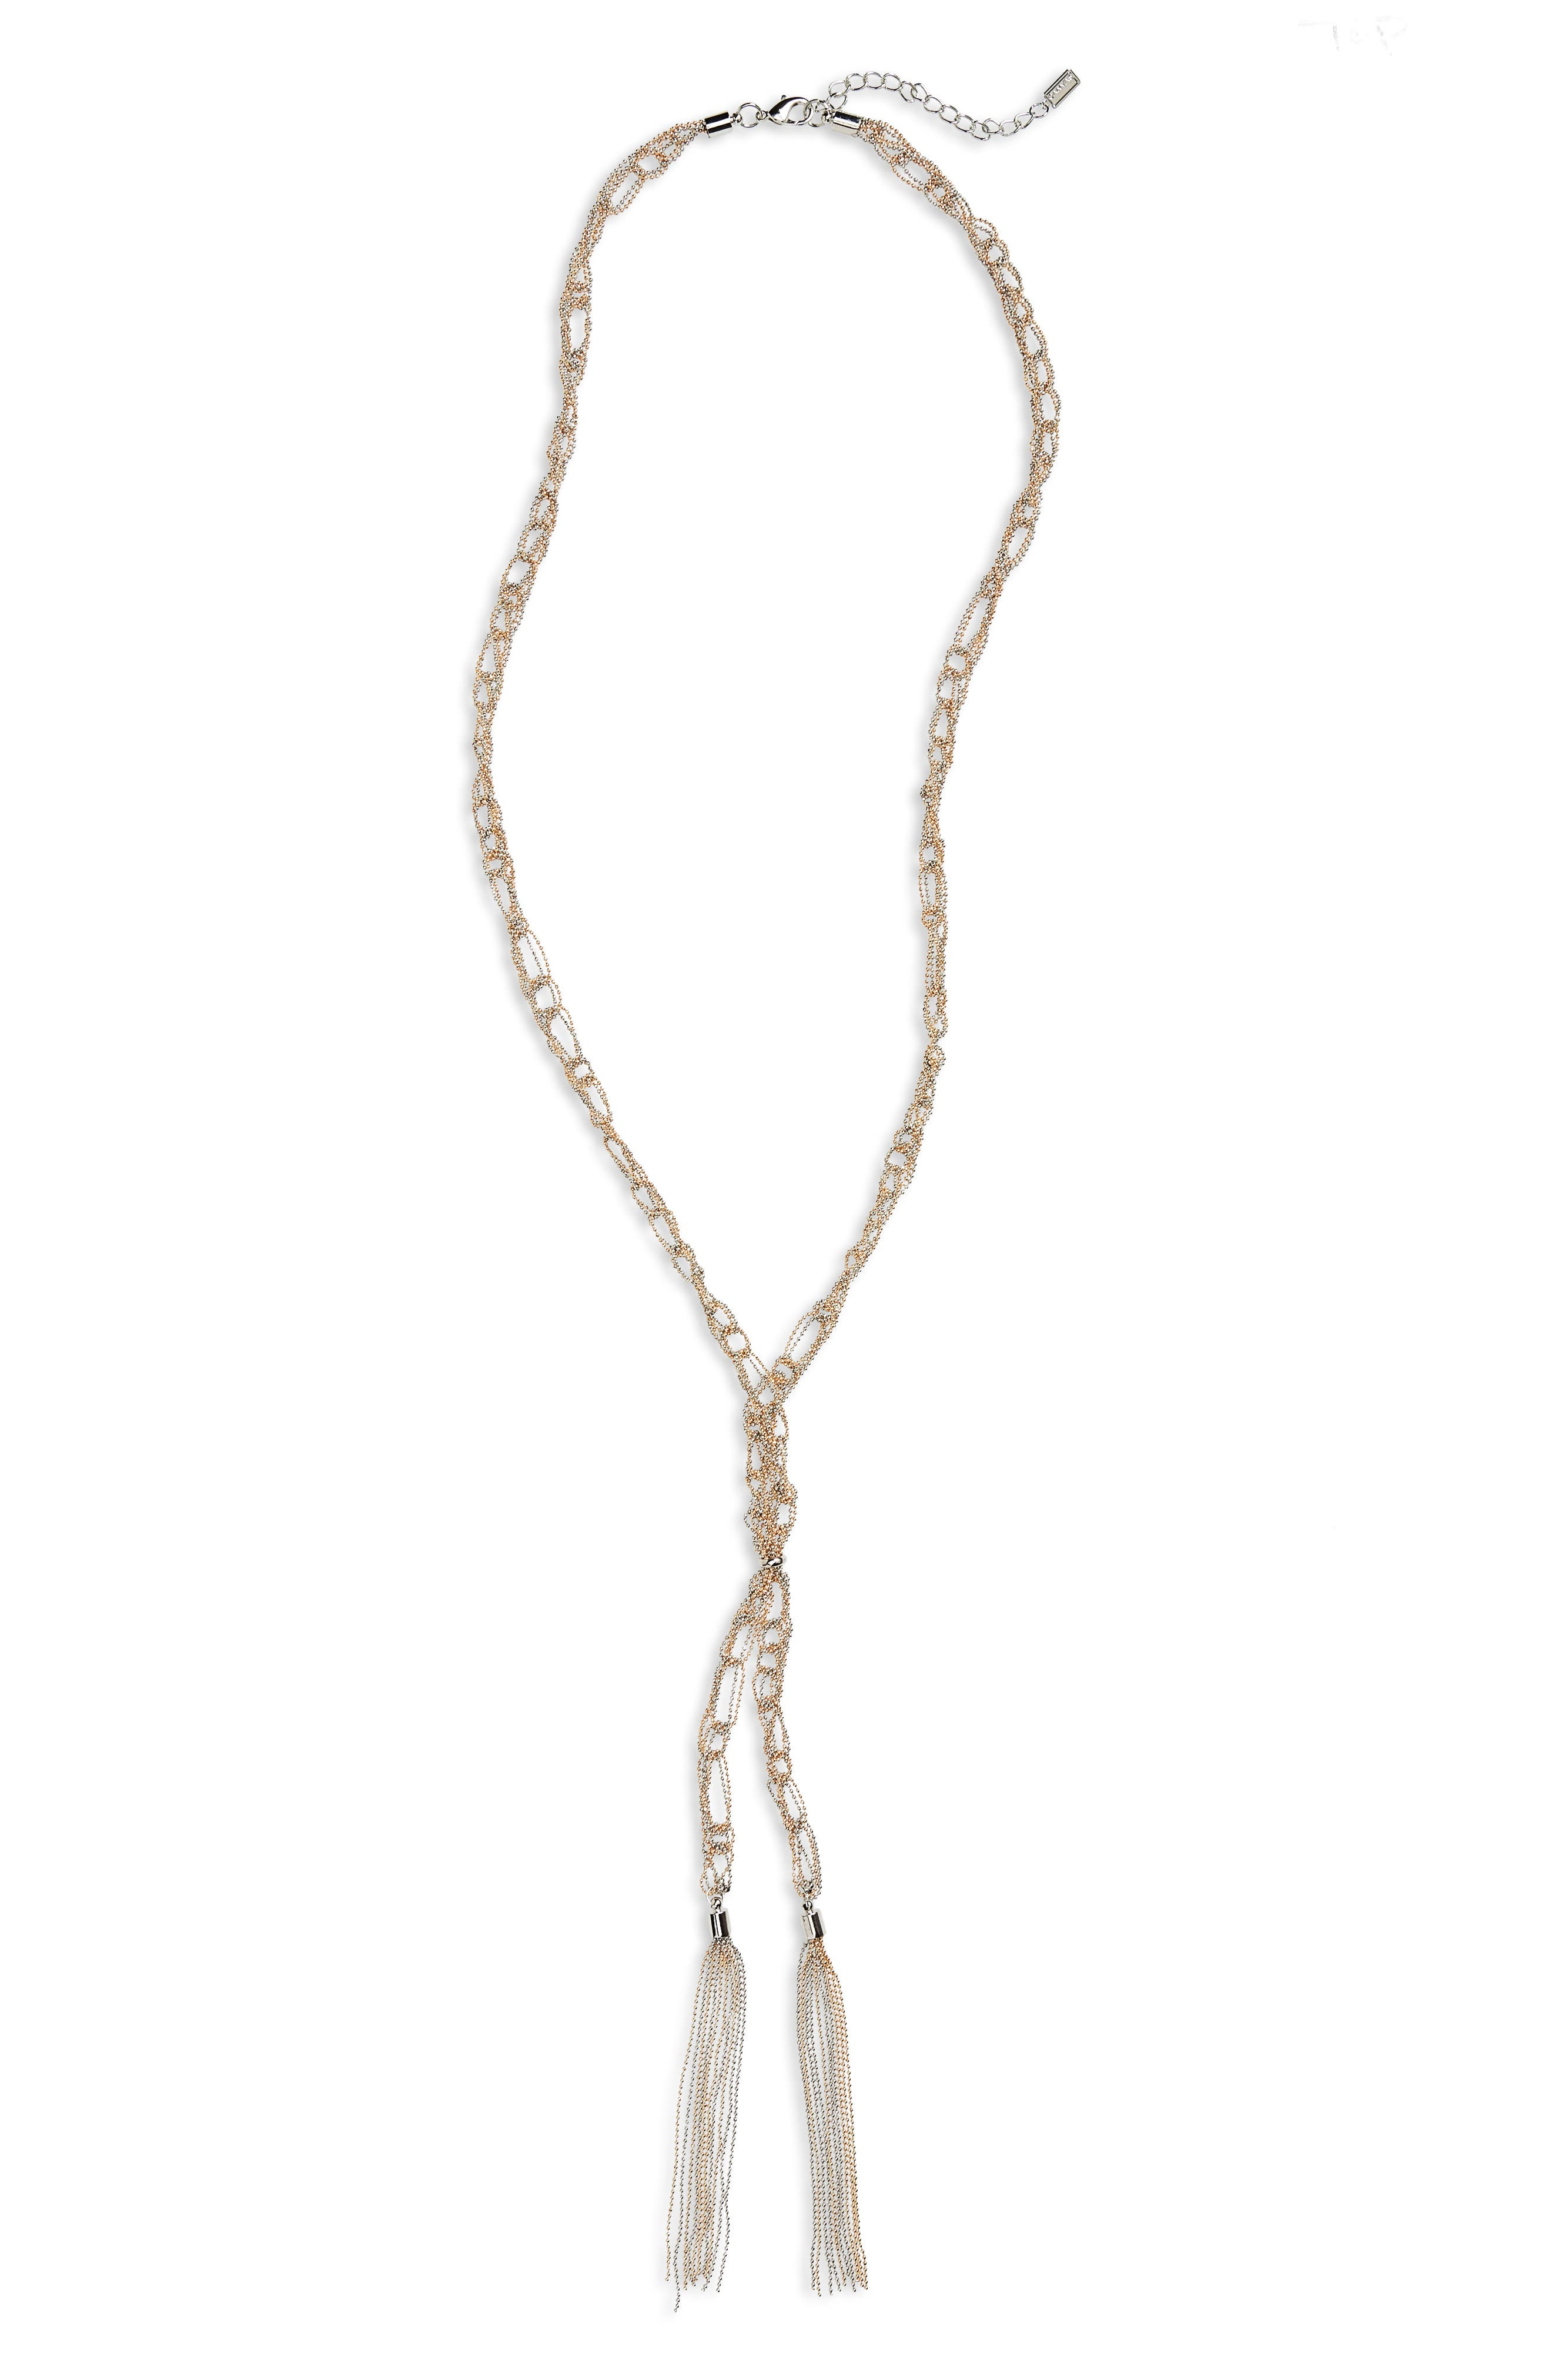 Braided Loop Chain Necklace,                             Main thumbnail 1, color,                             710